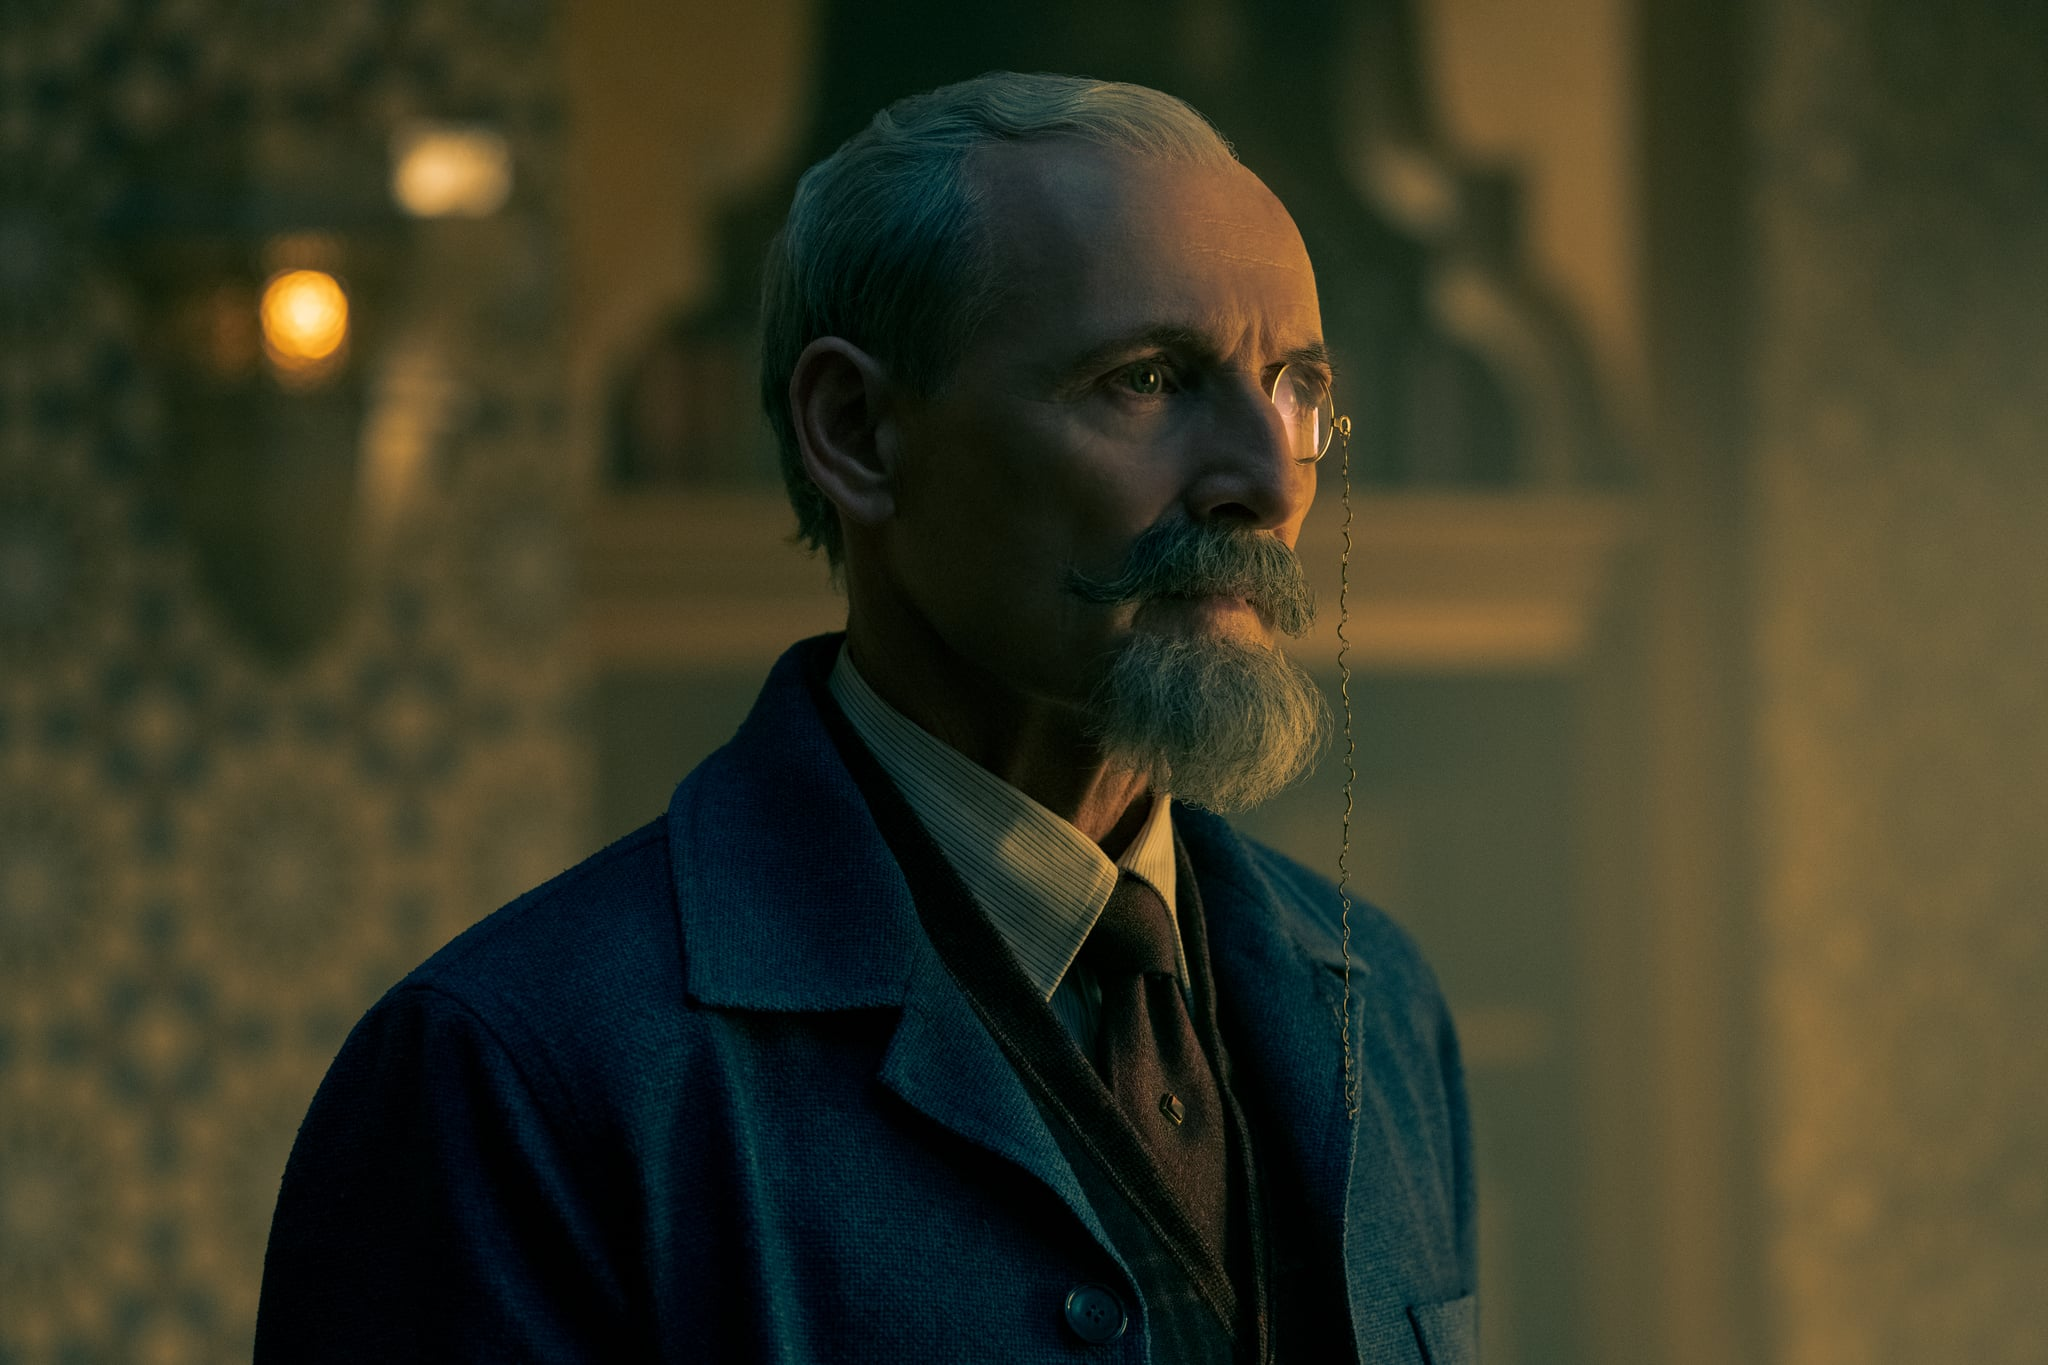 THE UMBRELLA ACADEMY COLM FEORE as SIR REGINALD HARGREEVES in episode 210 of THE UMBRELLA ACADEMY Cr. CHRISTOS KALOHORIDIS/NETFLIX  2020